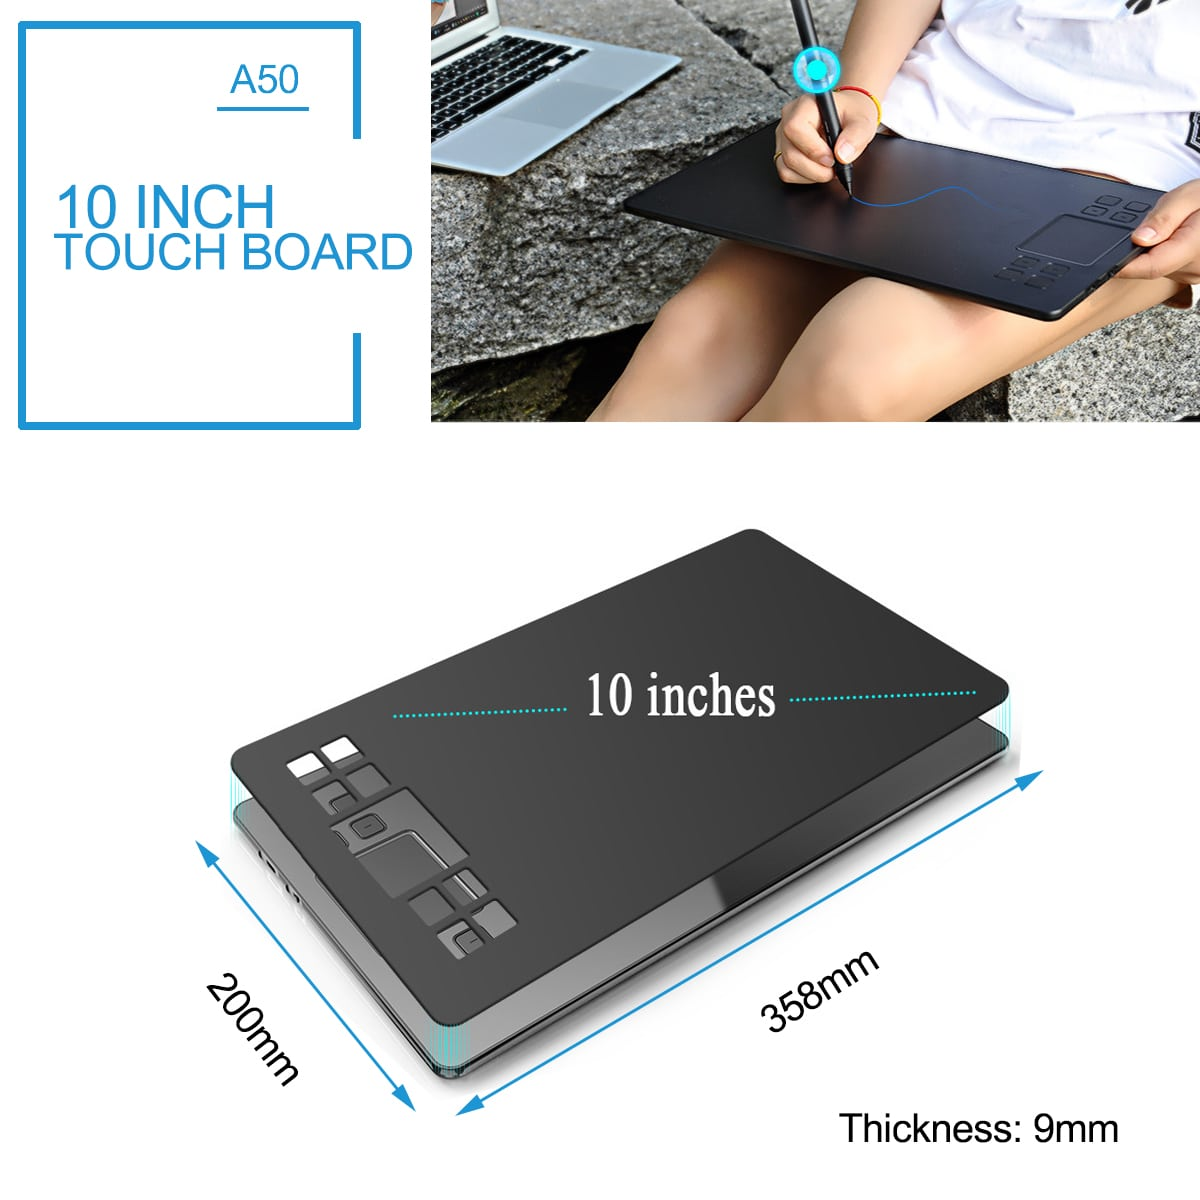 10 inch touch board